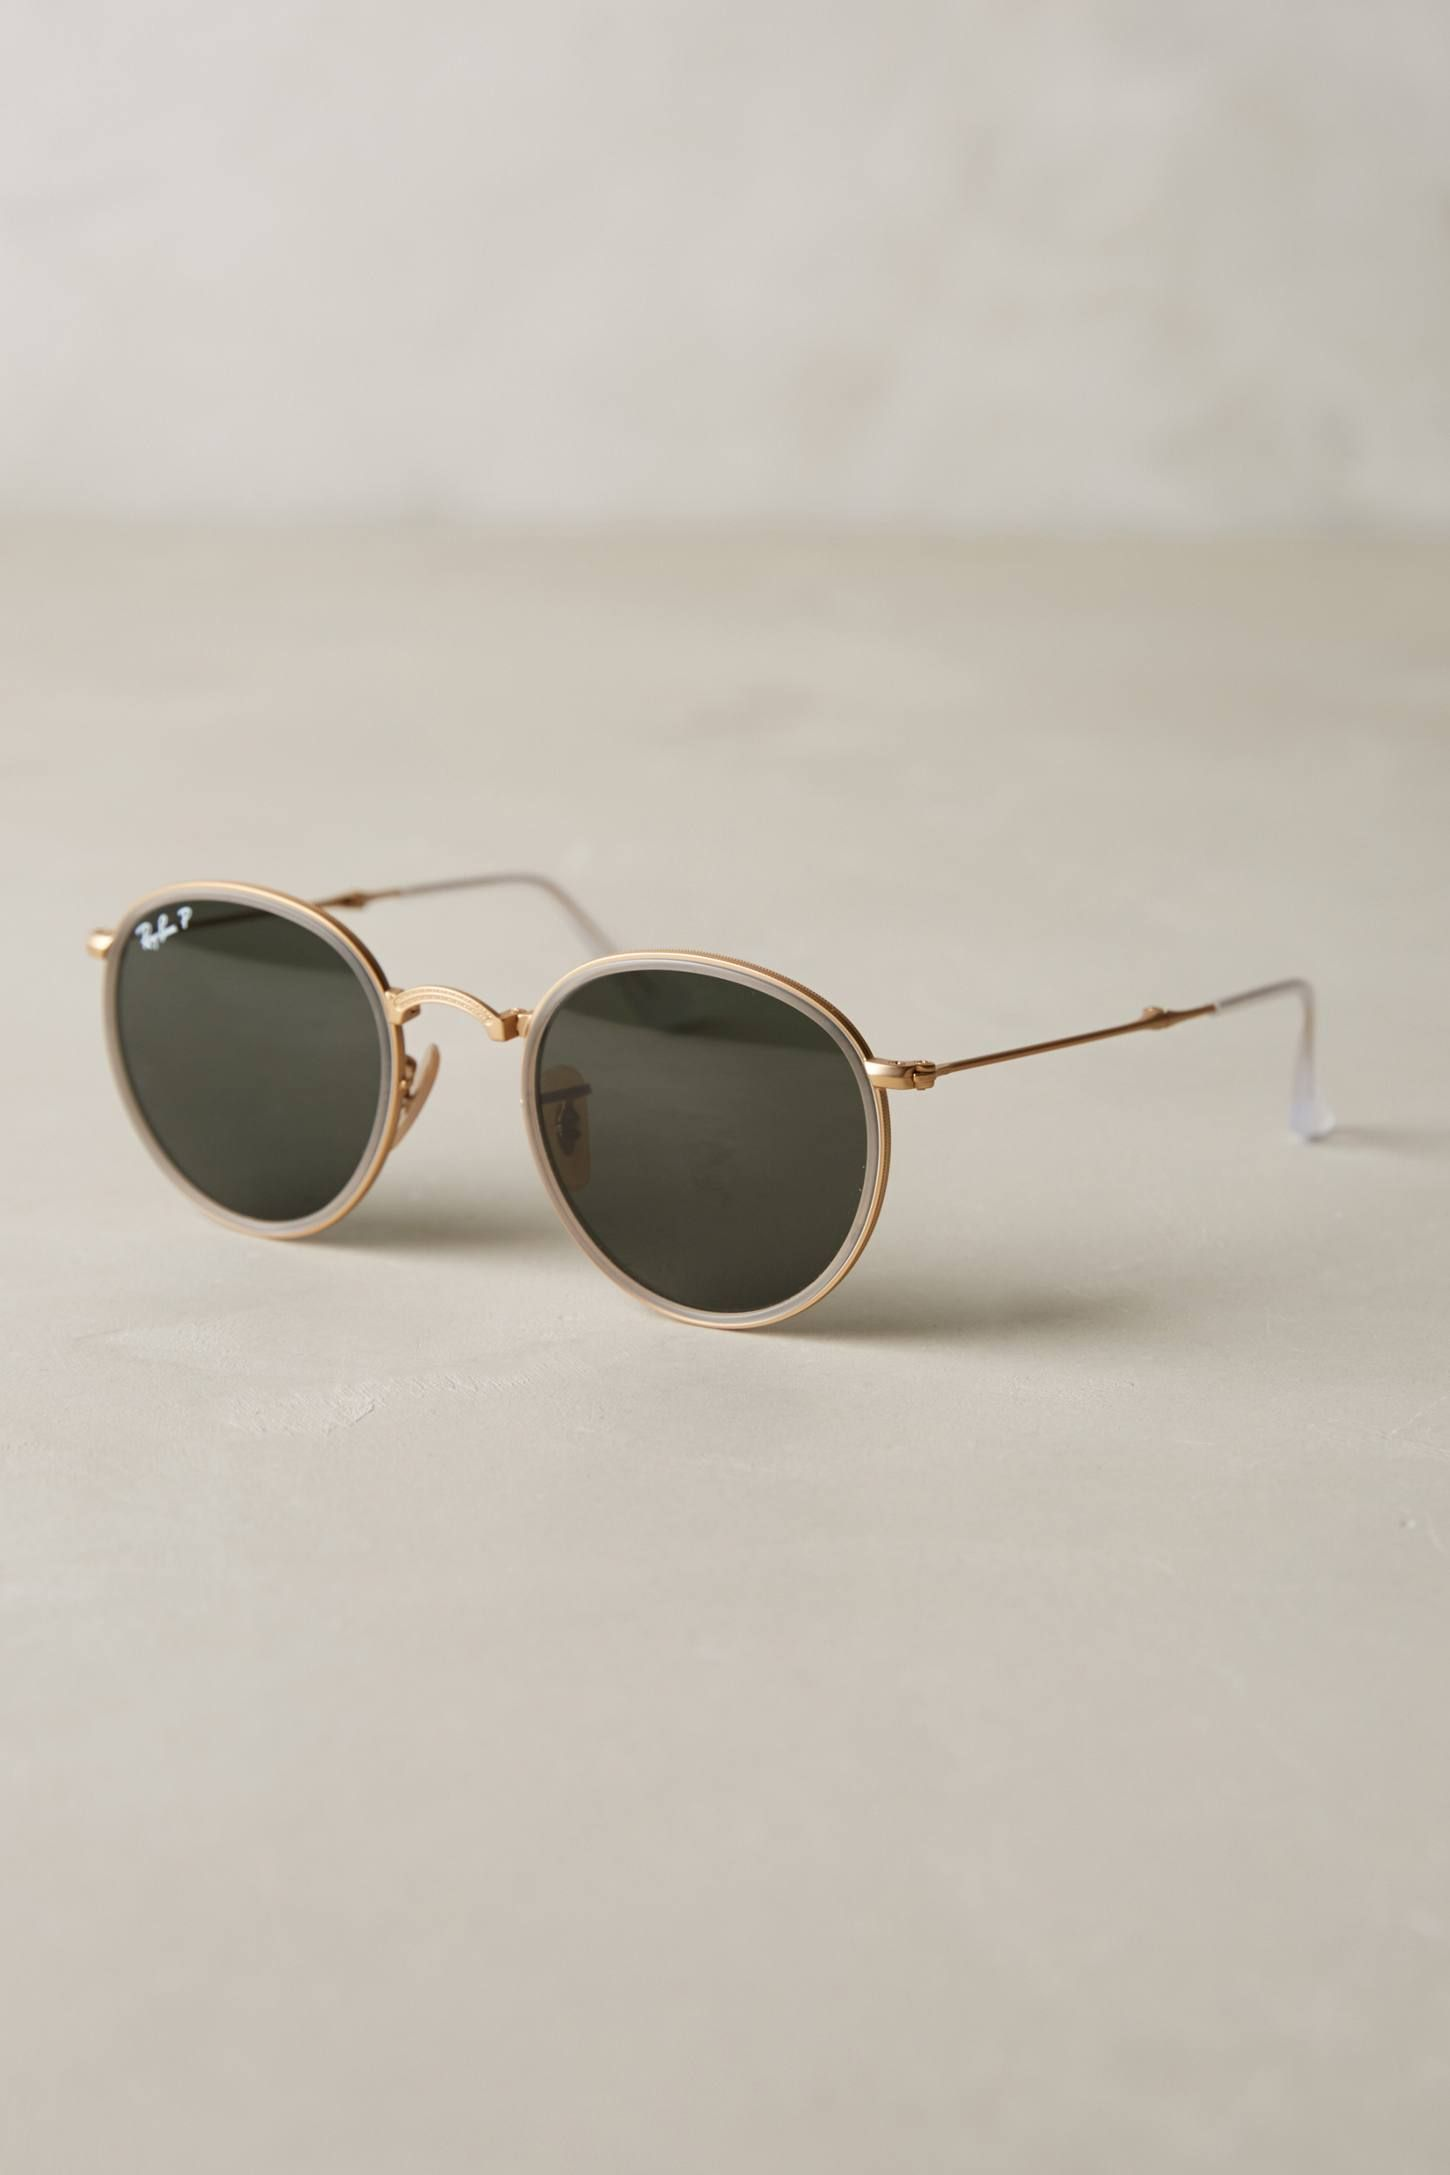 fe8849f056422 Shop the Ray-Ban Round Folding Classic Sunglasses and more Anthropologie at  Anthropologie today. Read customer reviews